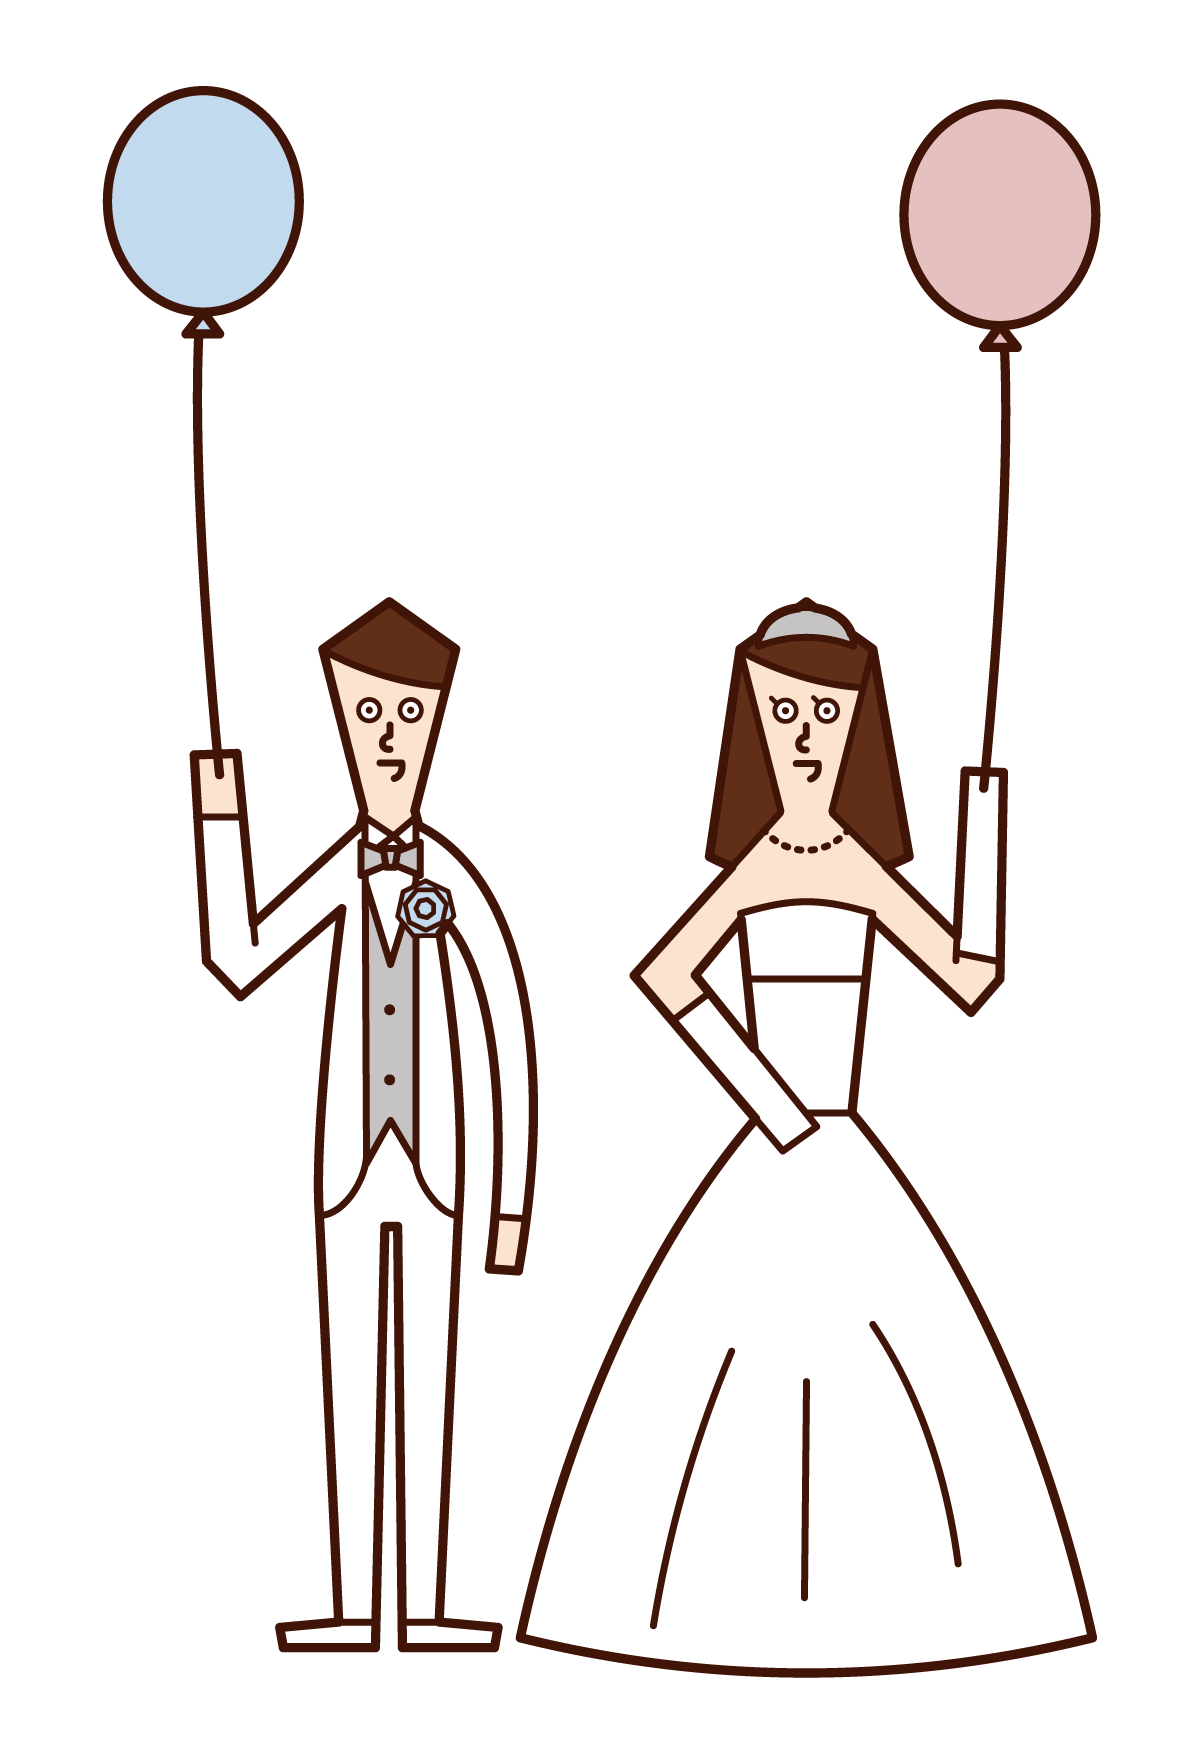 Illustration of bride and groom releasing balloons